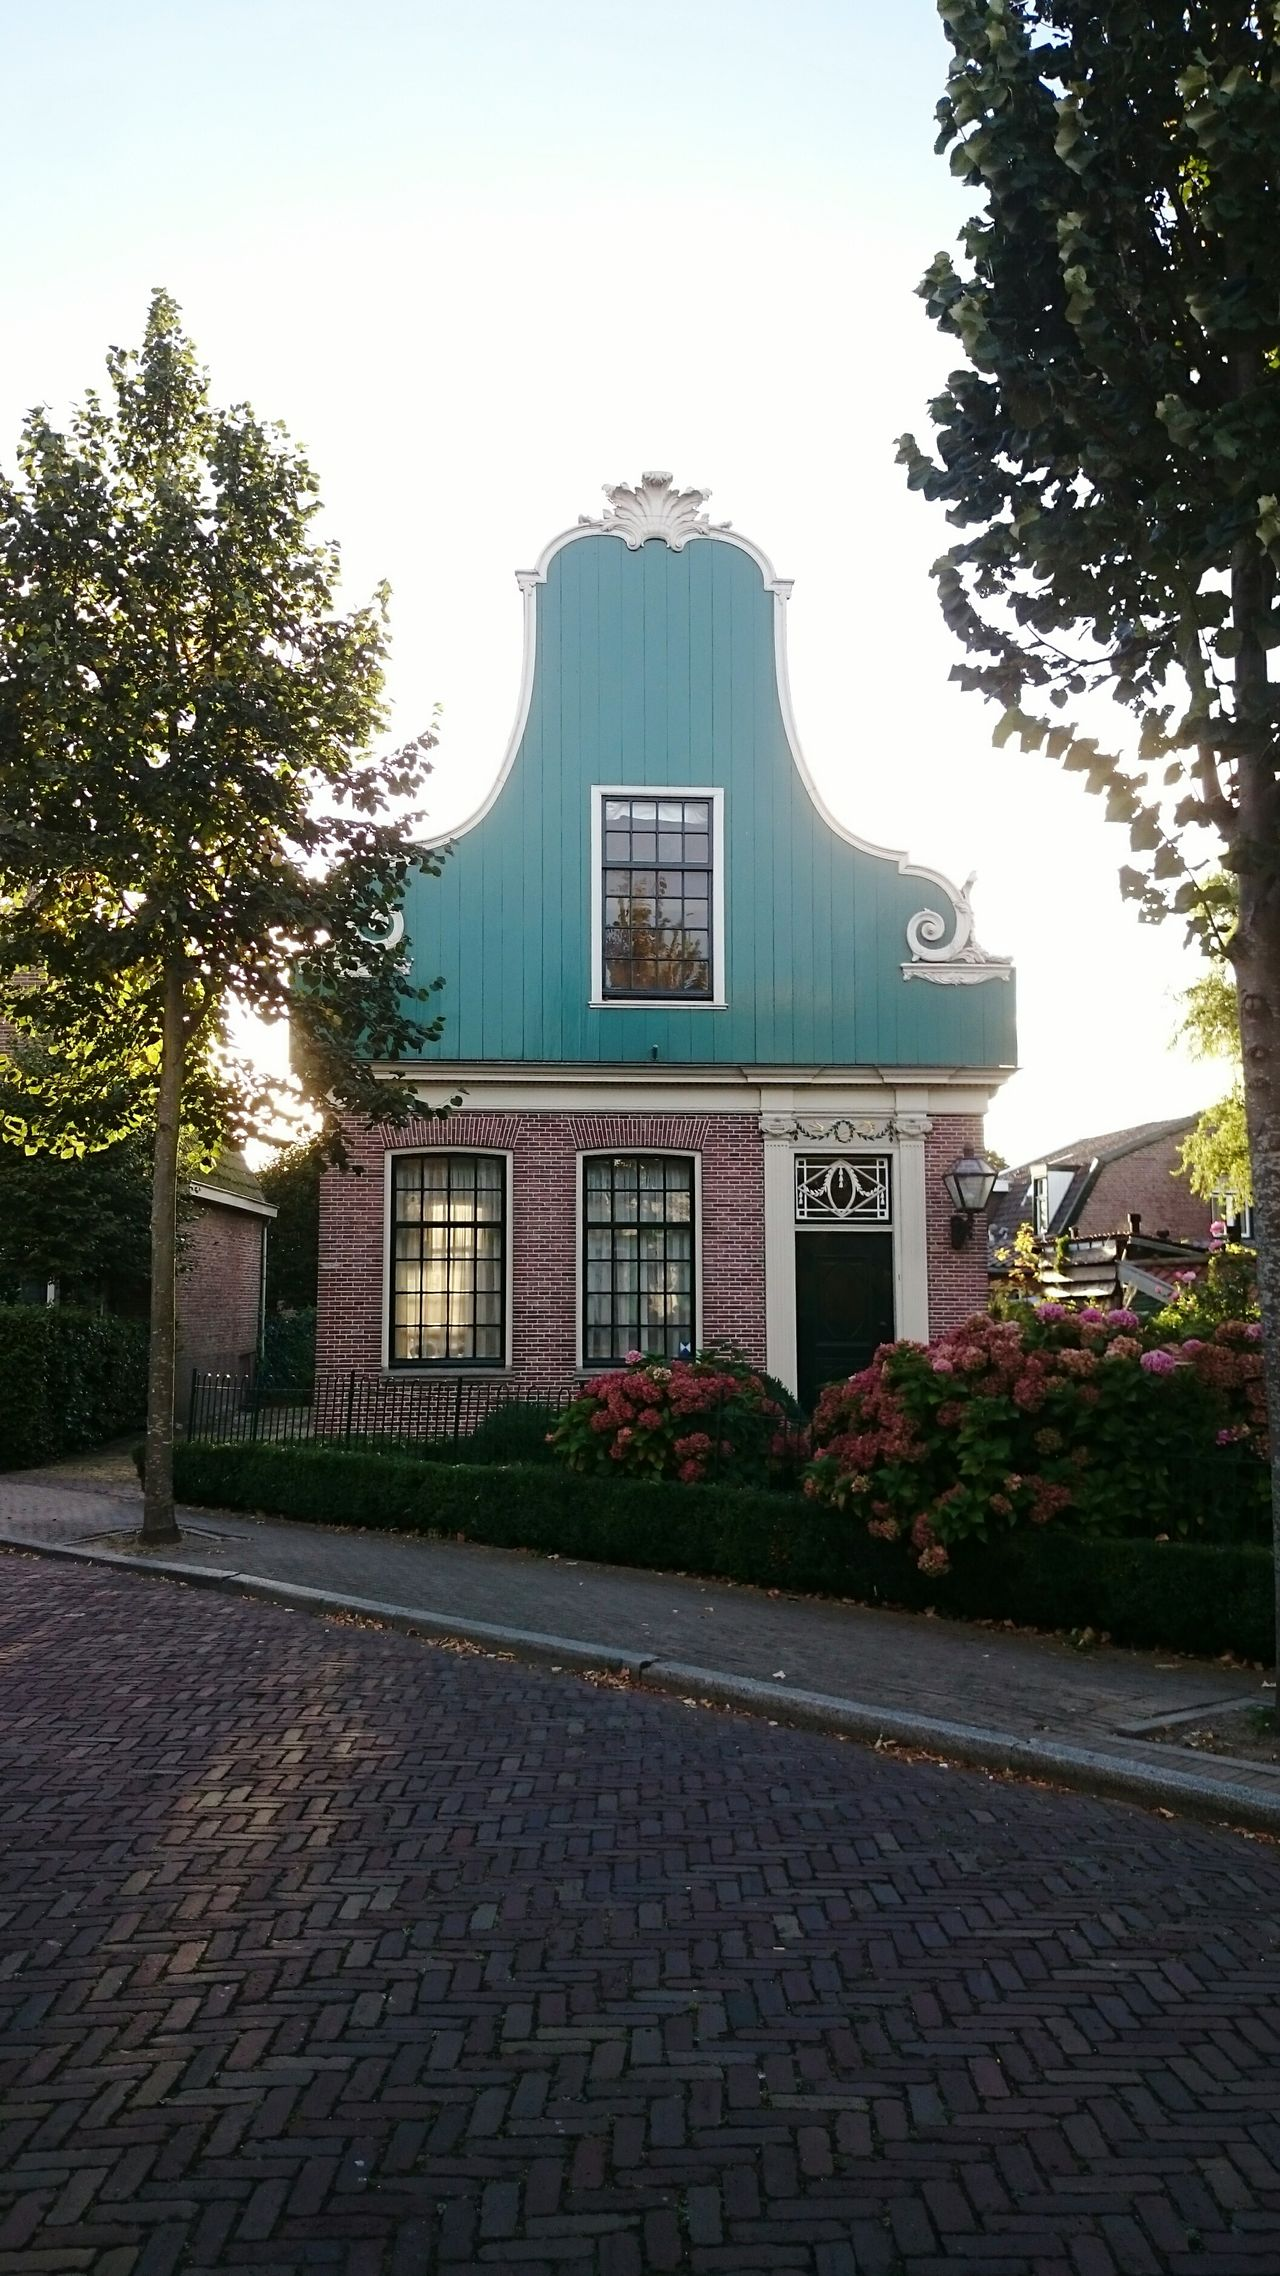 Architecture No People Building Exterior Day Built Structure Tree Outdoors Zaanseschans Netherlands Dutch House Dutch Architecture Sunrays Through The Window